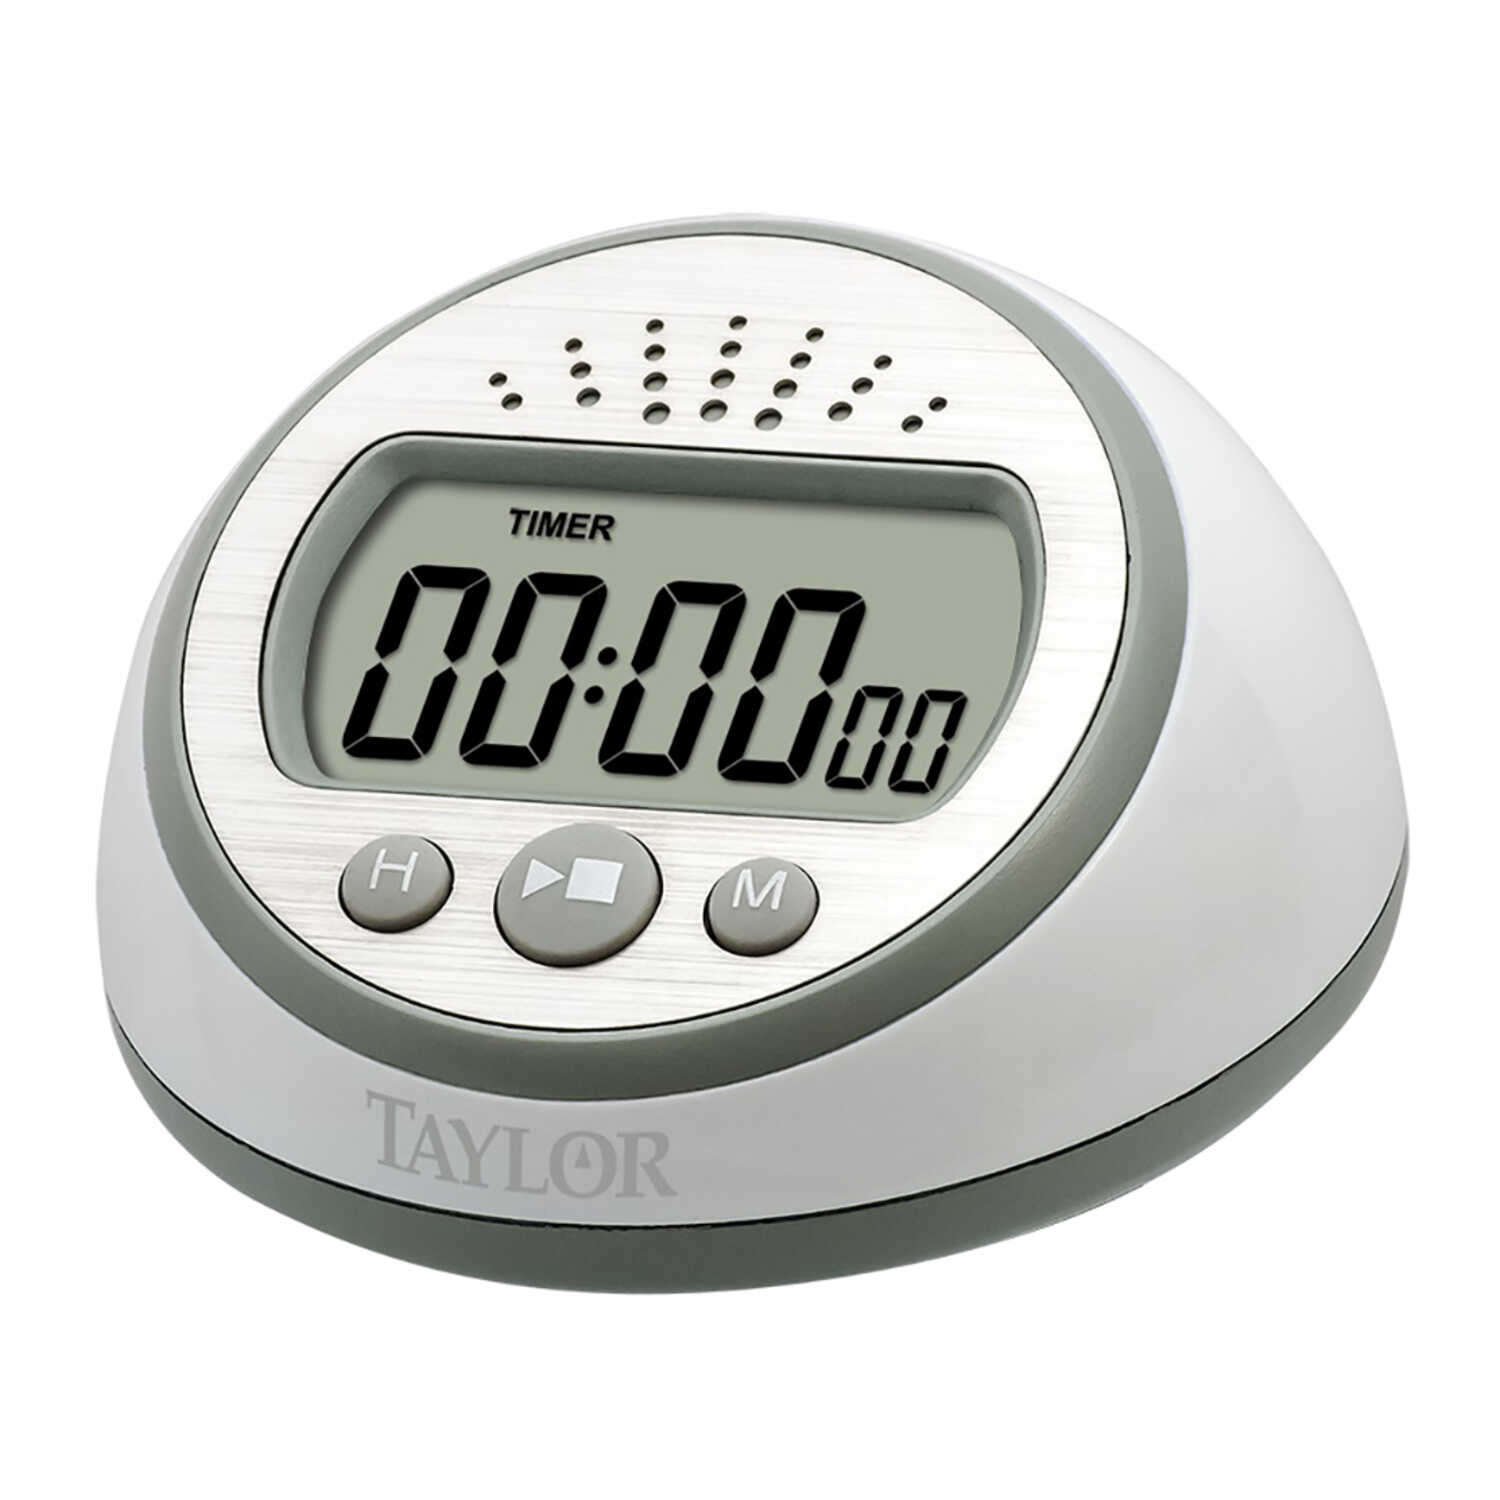 Taylor  Super Loud  Digital  Plastic  Timer